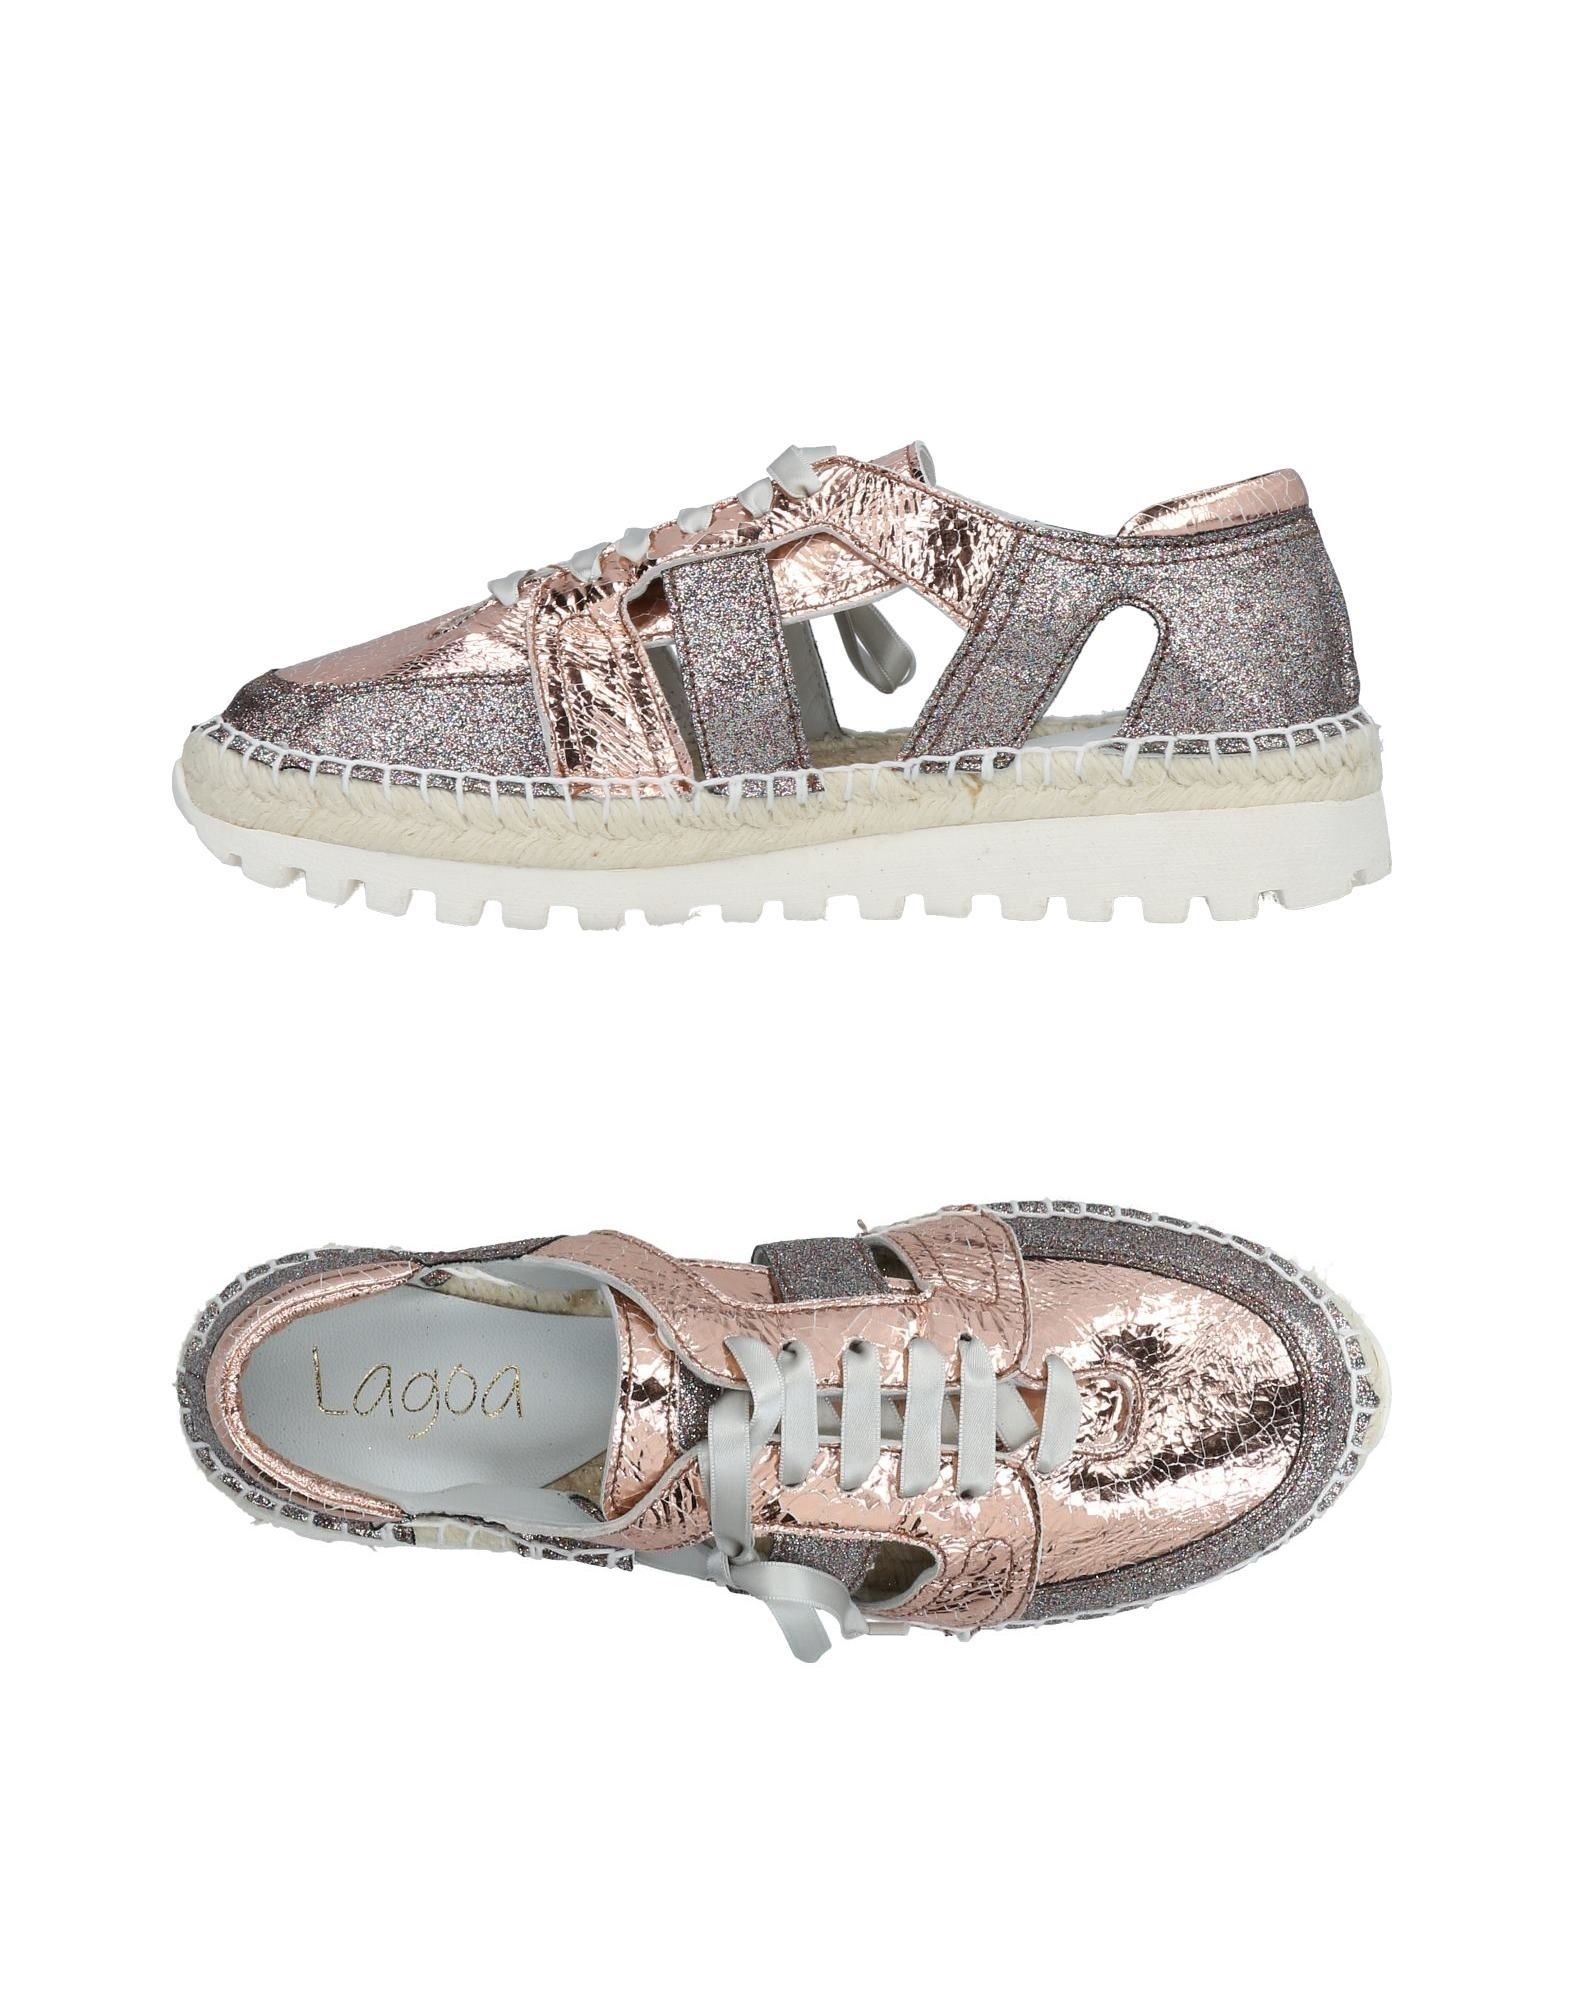 FOOTWEAR - Low-tops & sneakers on YOOX.COM Lagoa LjcDuC